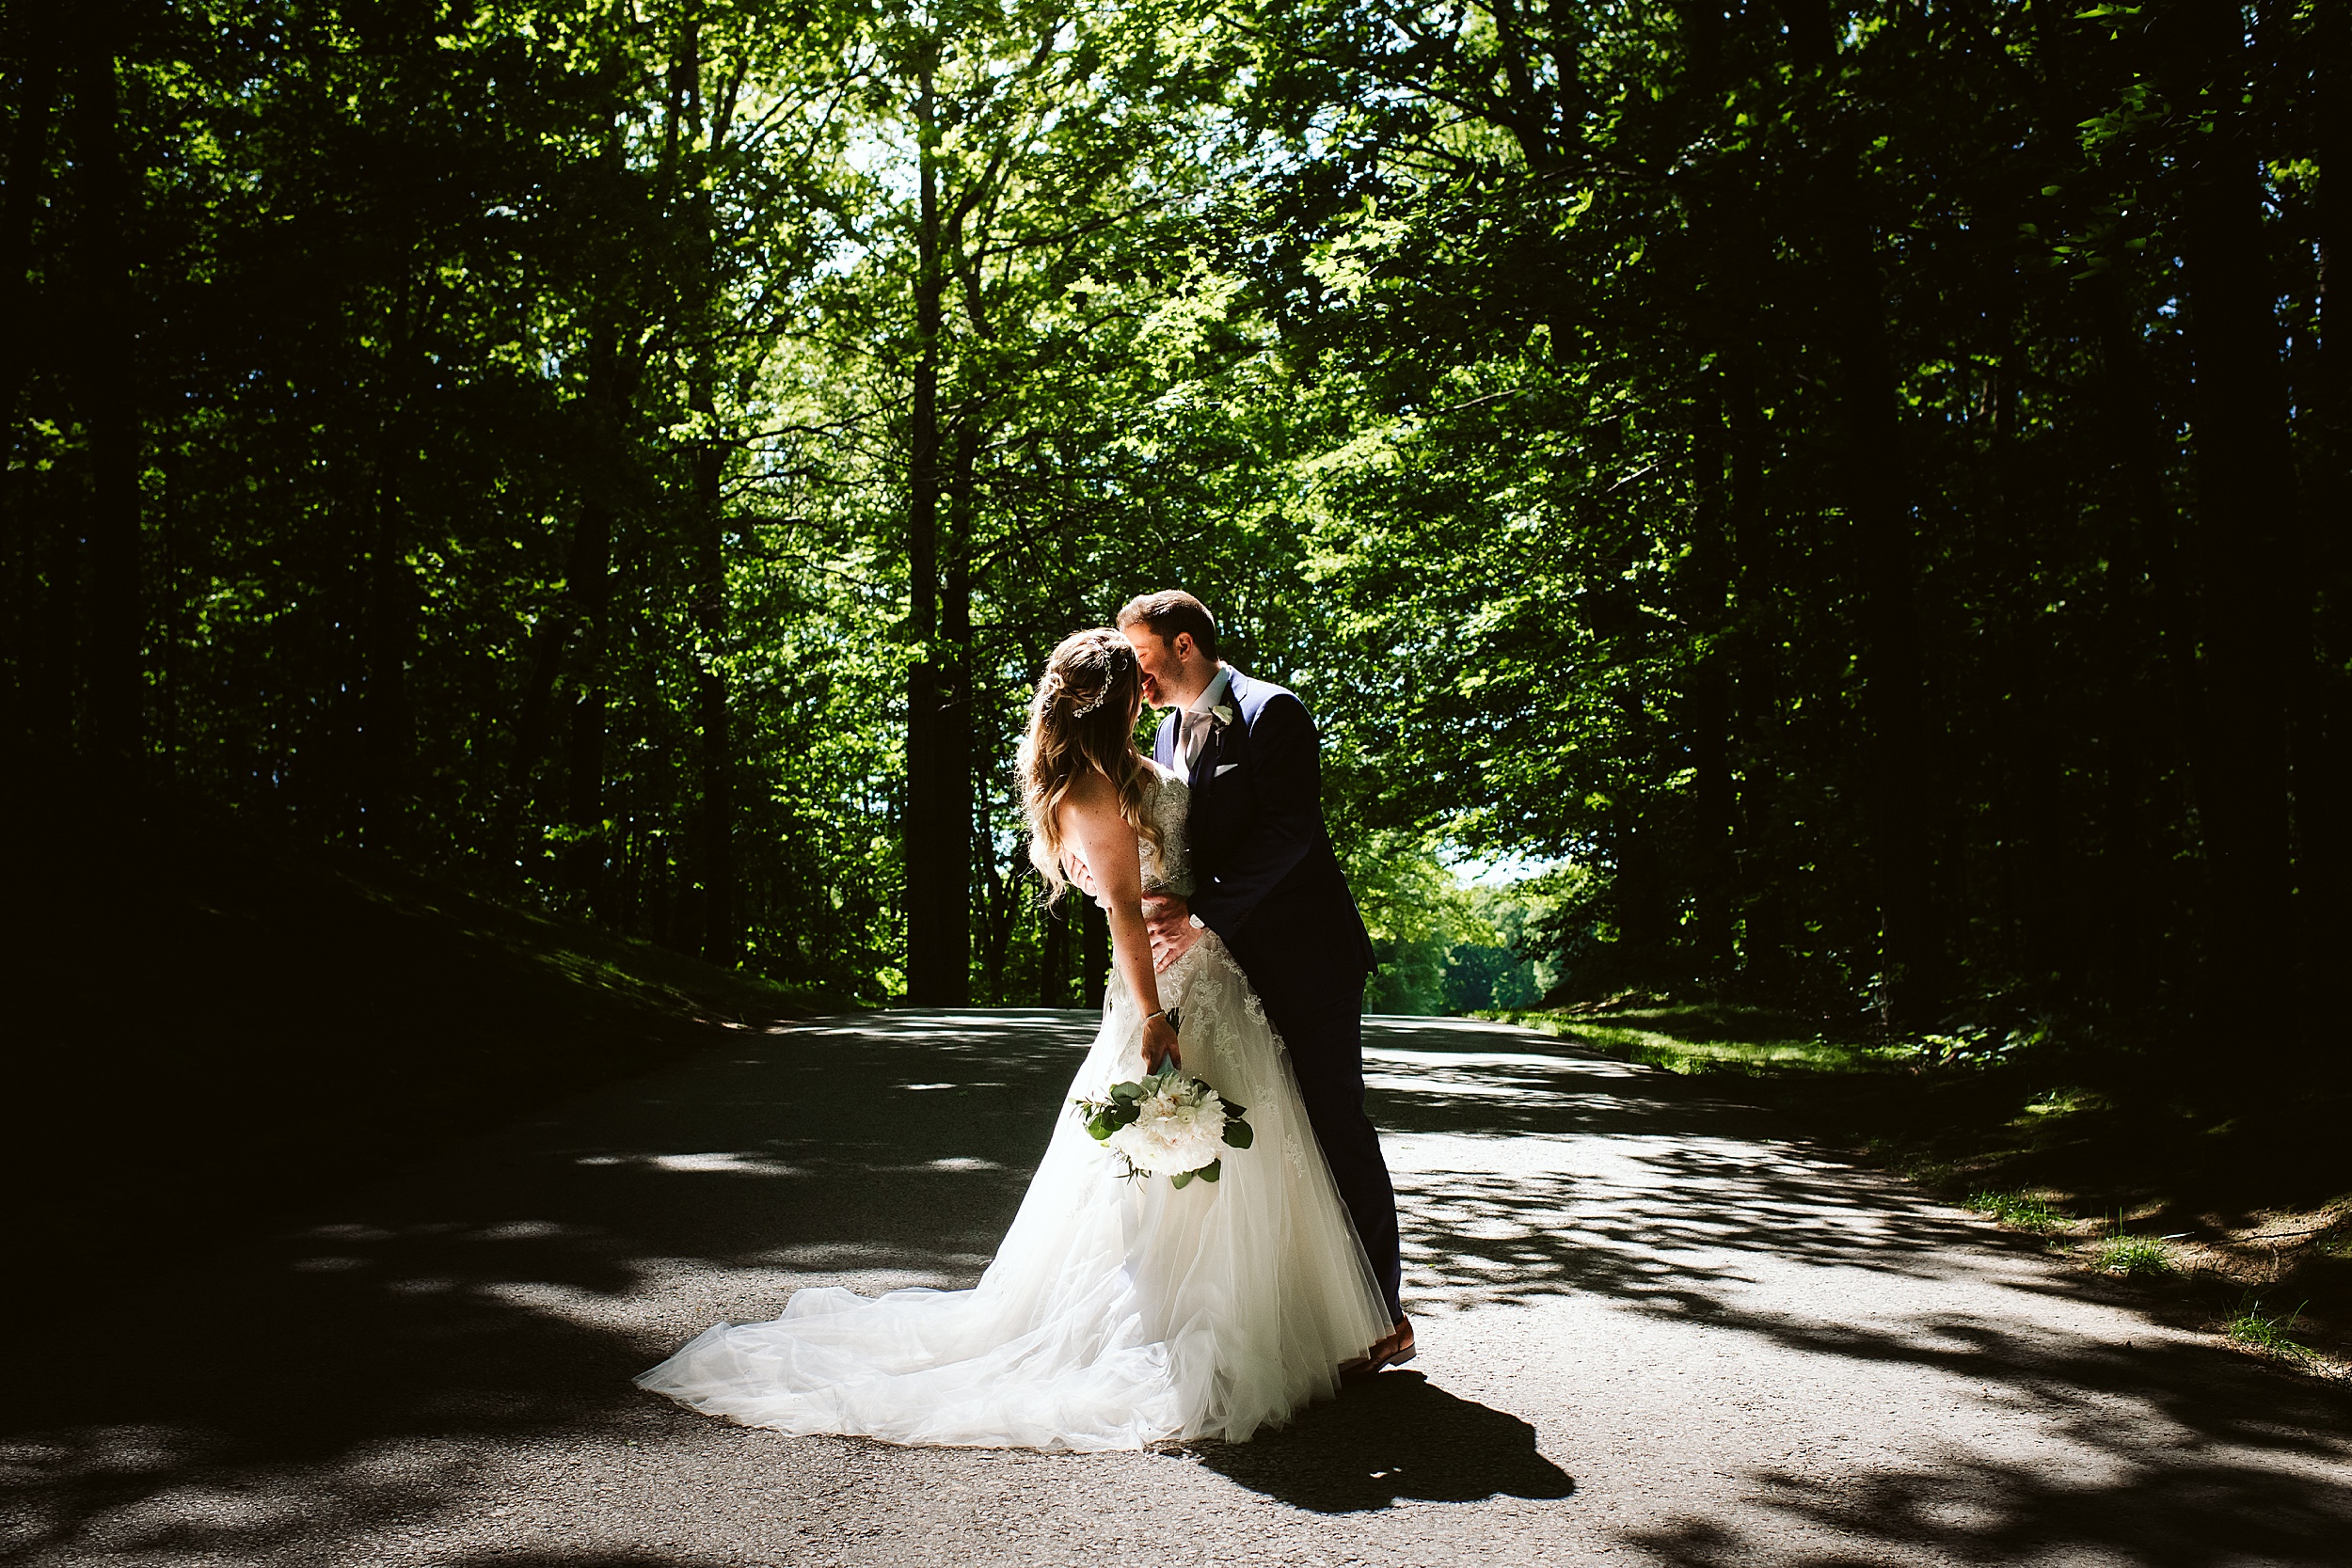 Toronto-Wedding-Photographers-Pheasant-run-golf-club-newmarket_0019.jpg